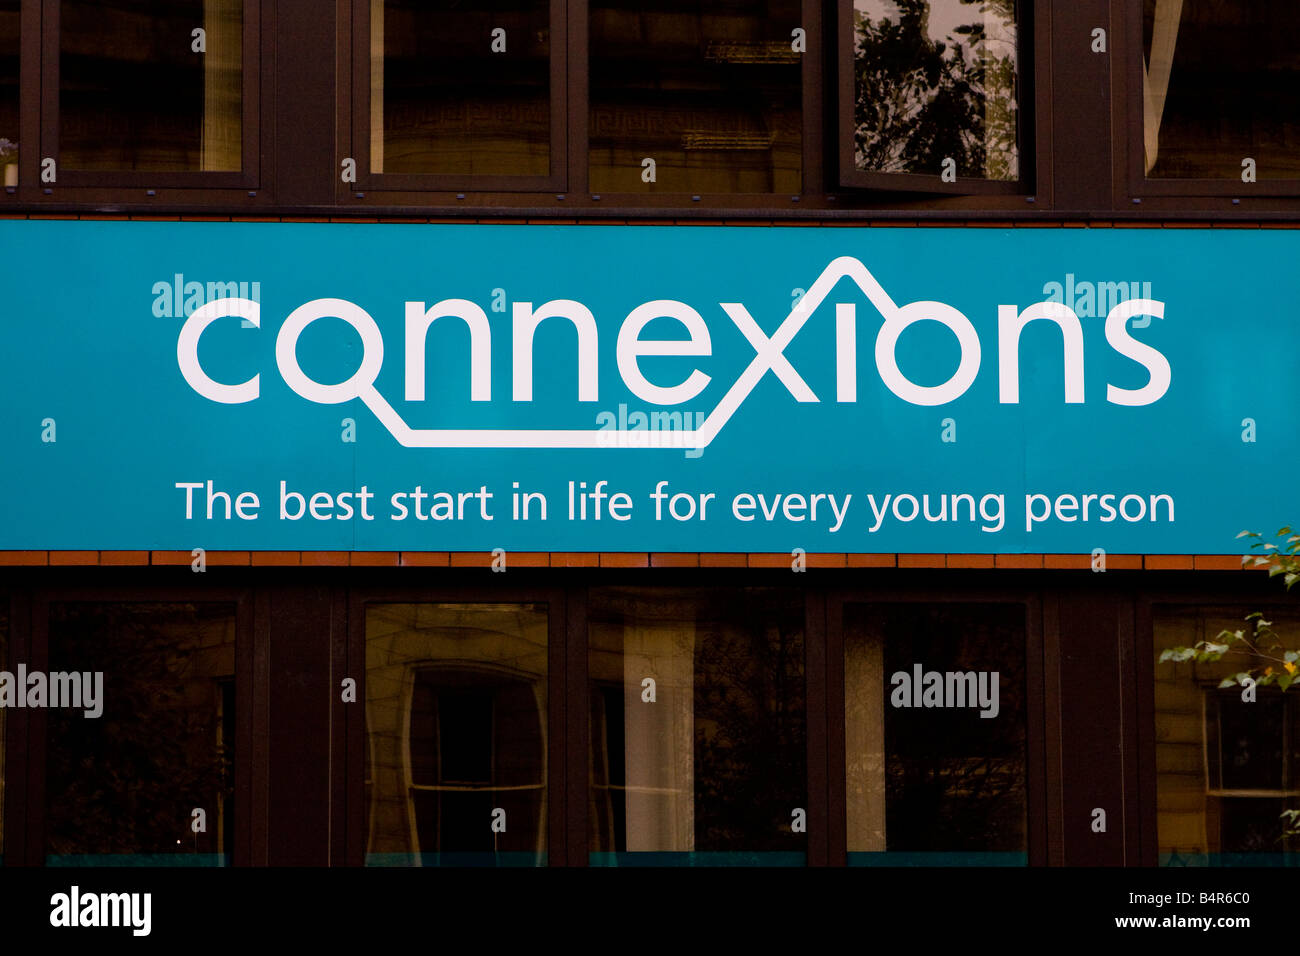 Connexions Information & advice for young people - Stock Image